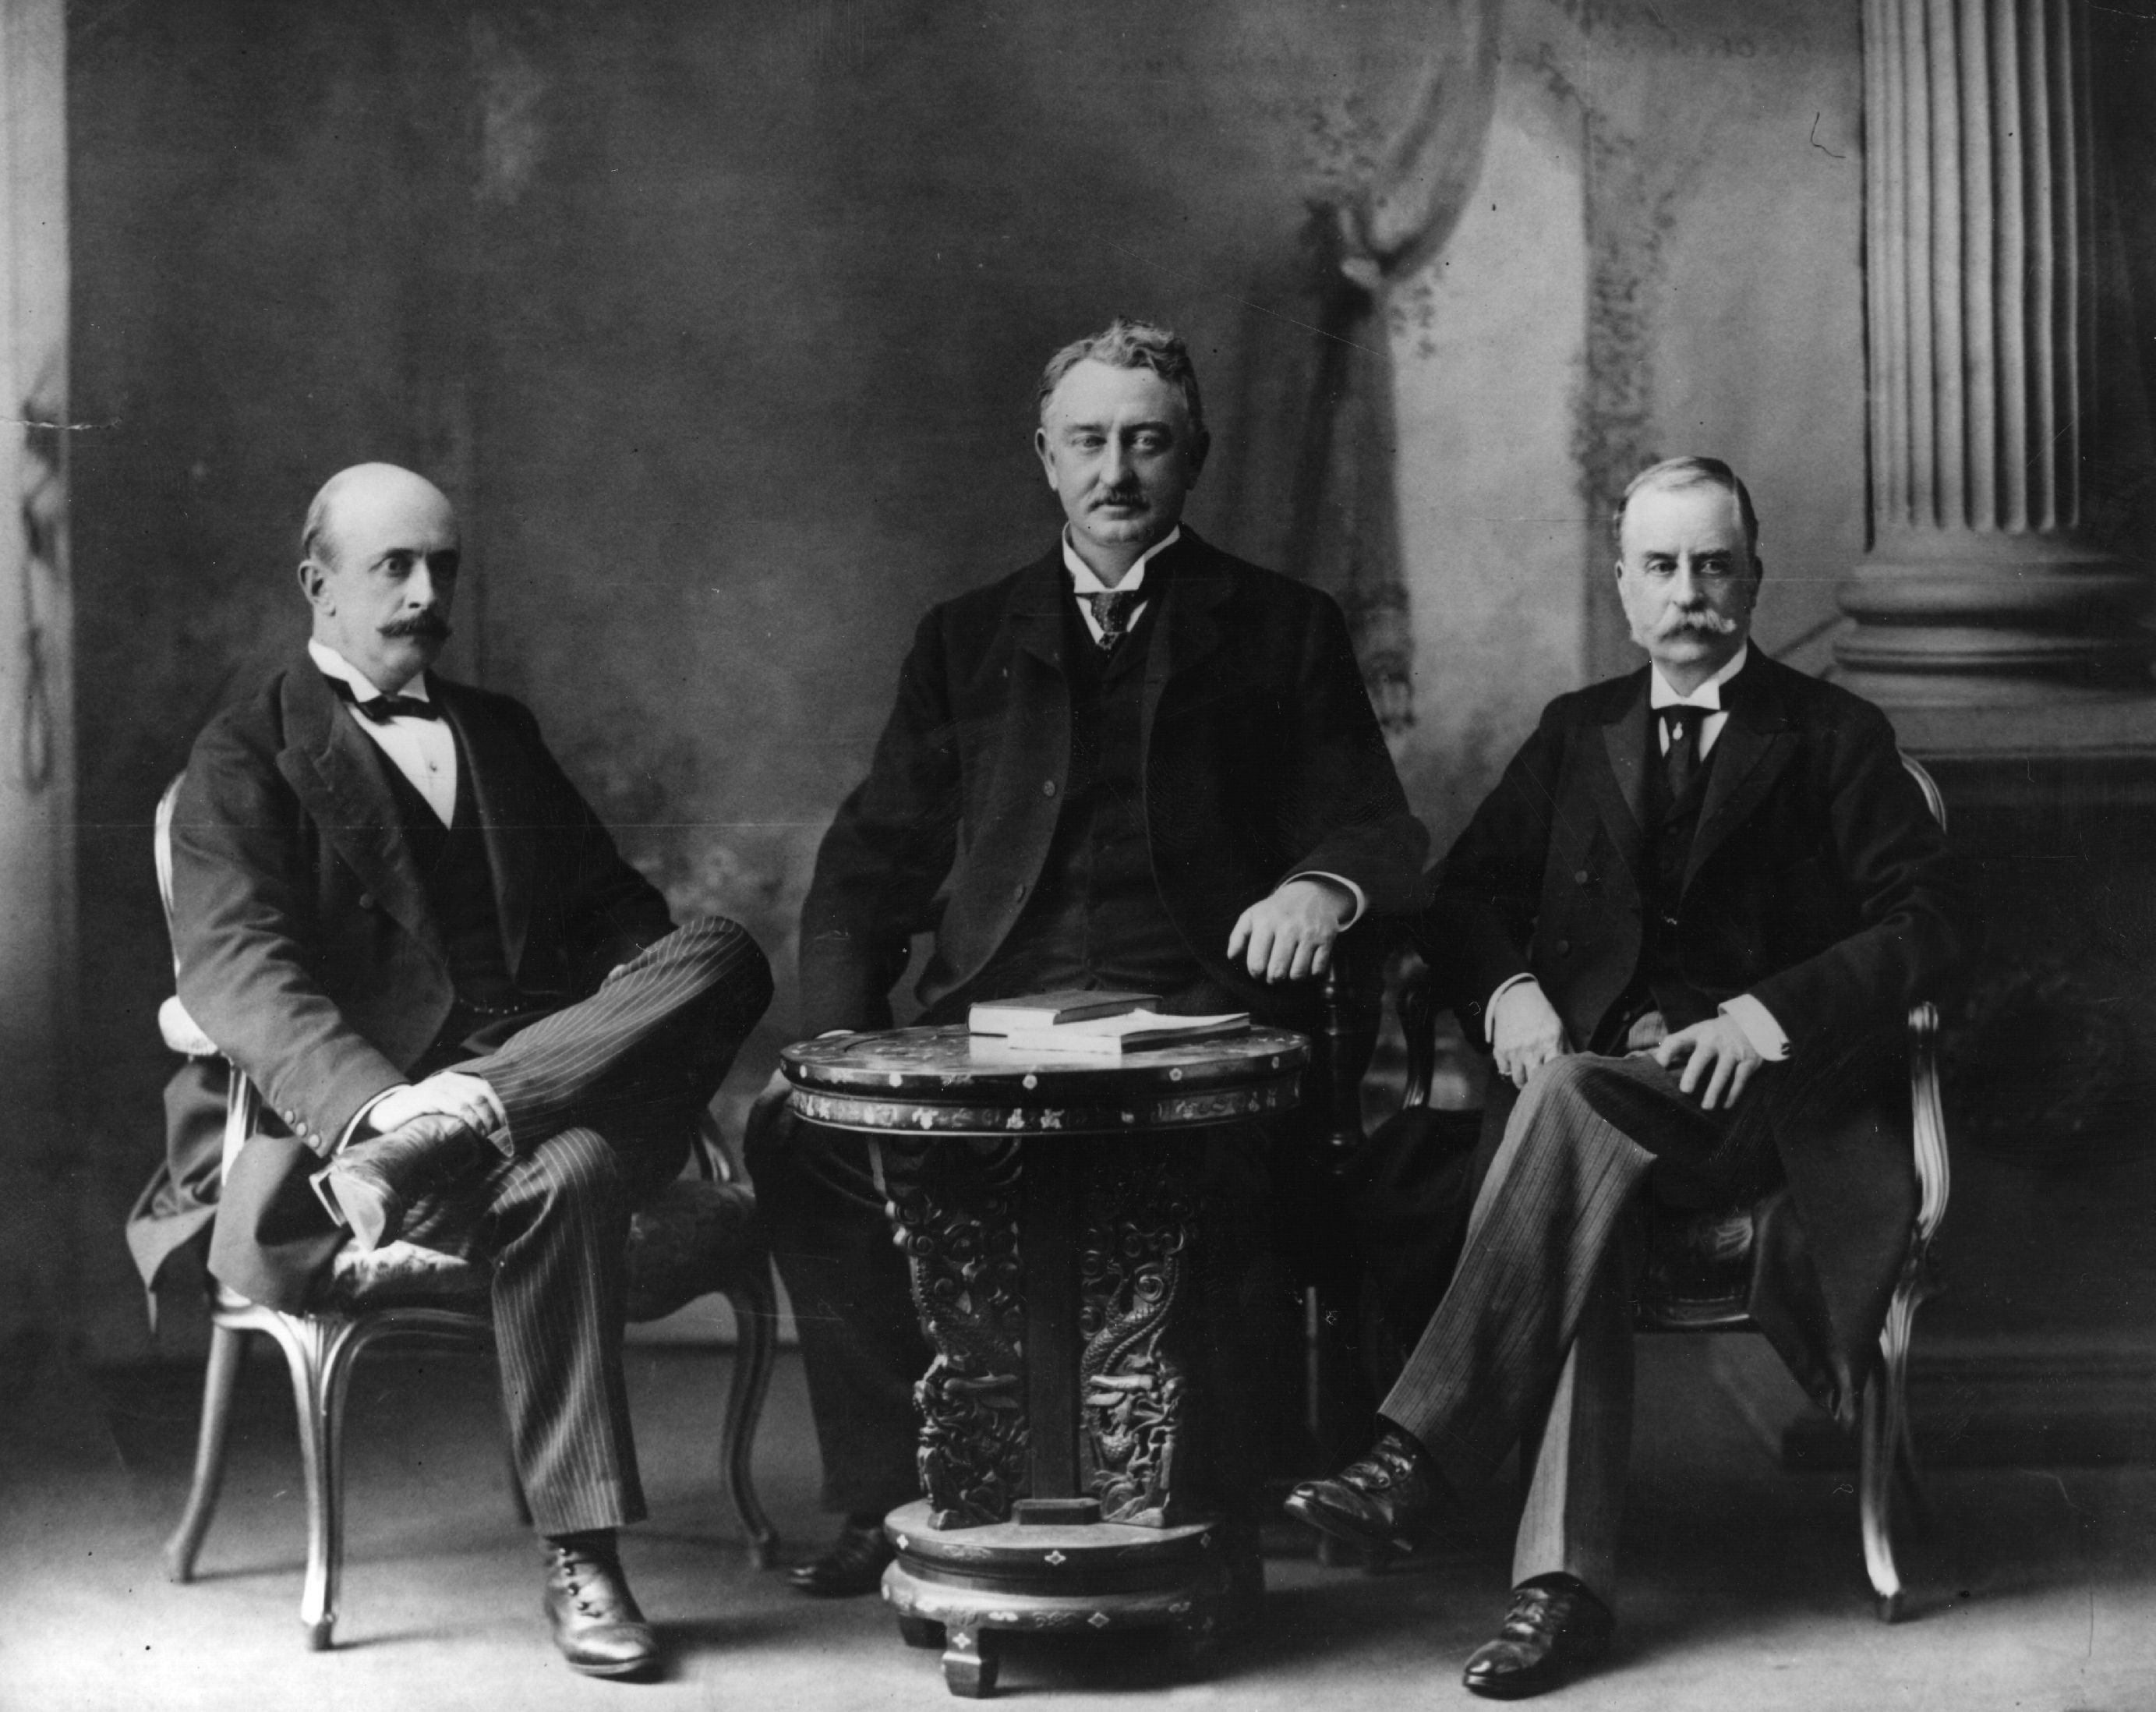 circa 1895:  Albert Henry George, 4th Earl Grey, Cecil Rhodes (1853 - 1892) (centre), and James Hamilton, 2nd Duke of Abercorn (1838 - 1913) (right). Hamilton was Chairman of the British South African Company and Earl Grey the Administrator.  (Photo by Hulton Archive/Getty Images)